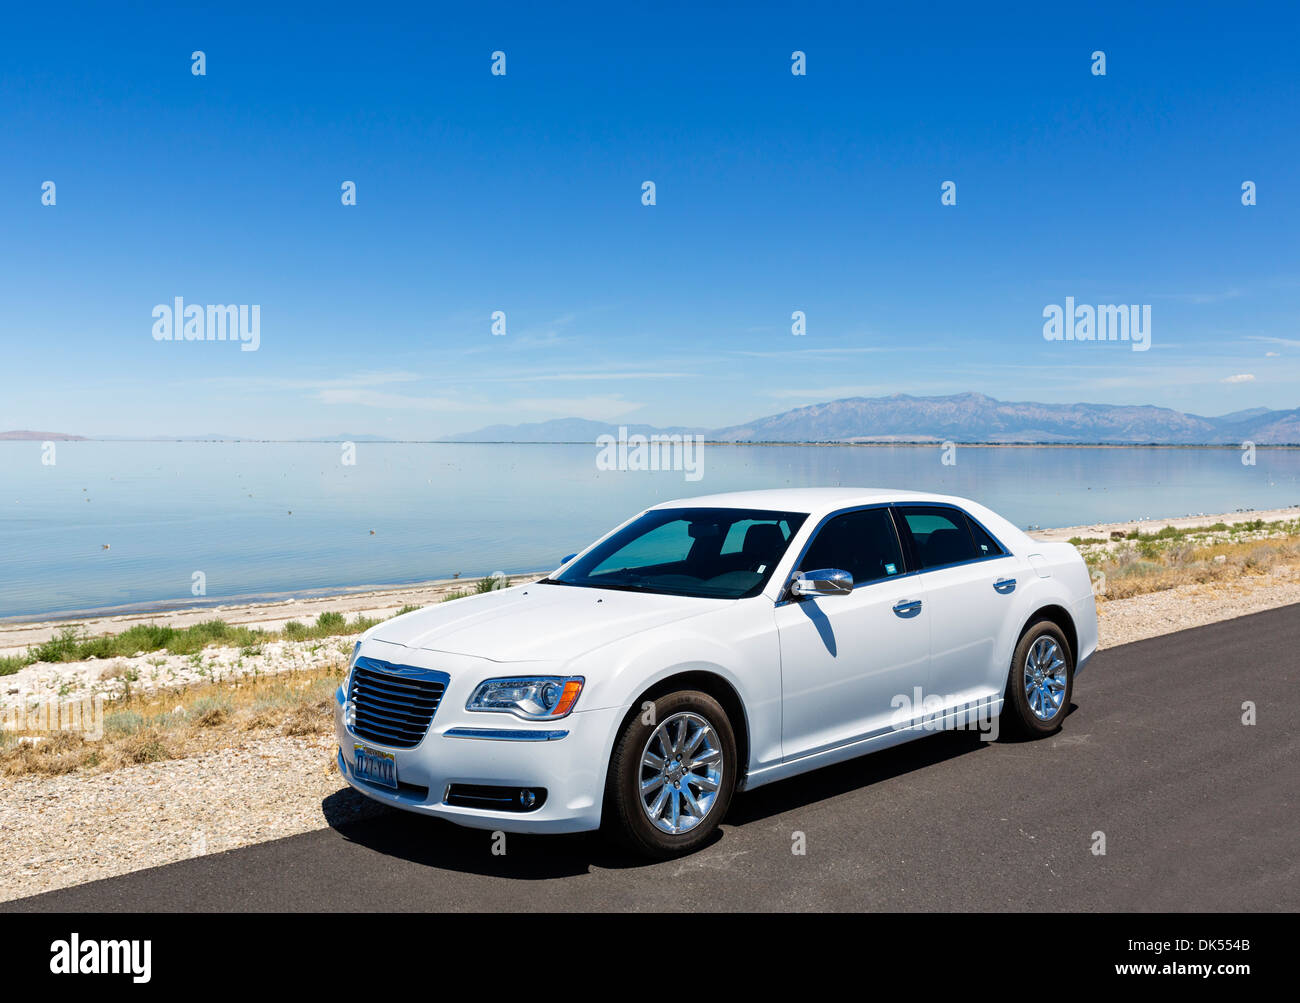 alamo car rental stockfotos alamo car rental bilder alamy. Black Bedroom Furniture Sets. Home Design Ideas